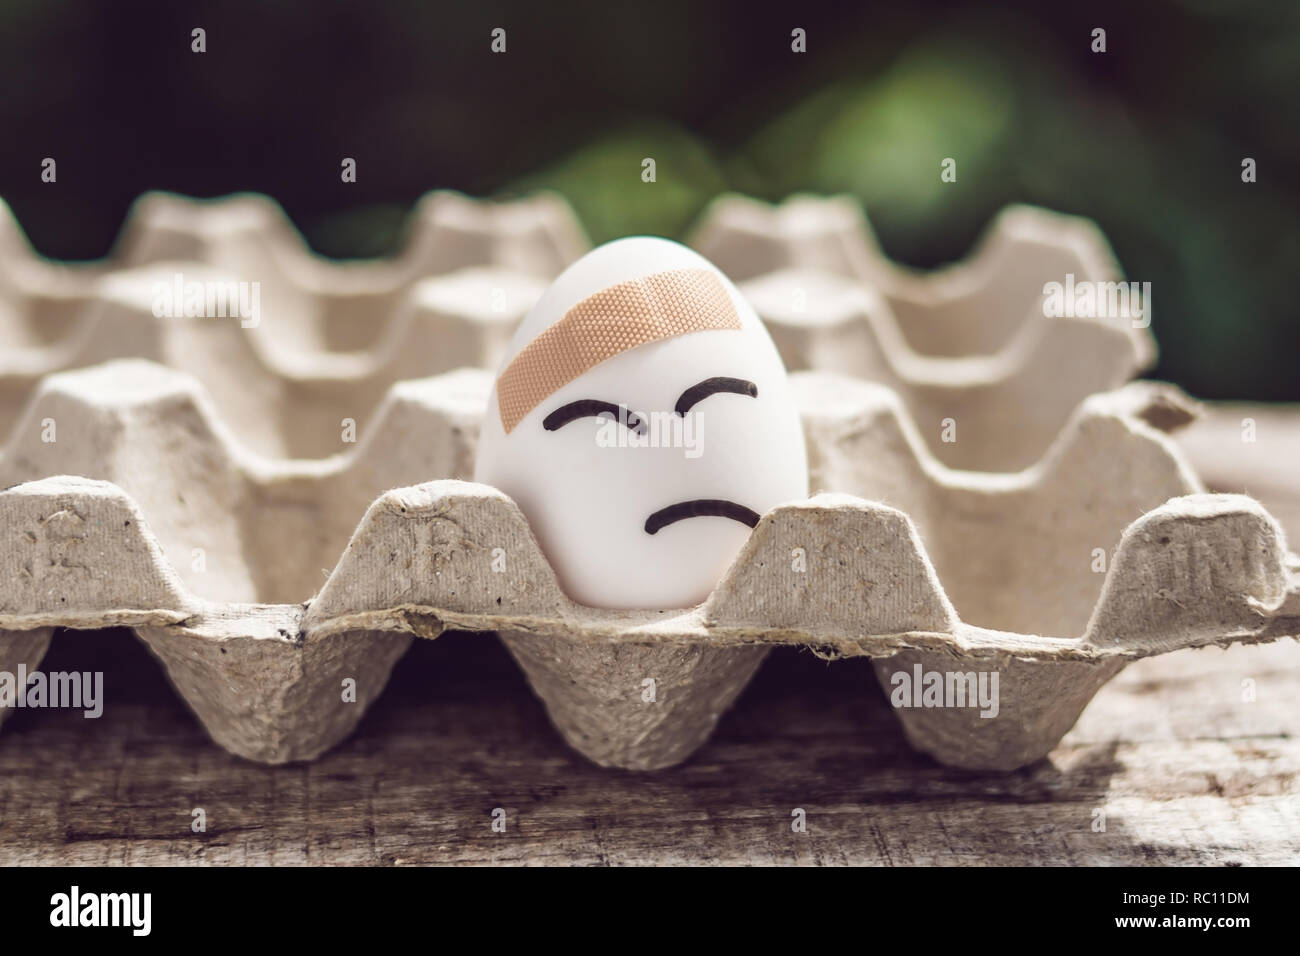 Broken egg with sticking plaster. Concept of brittleness and pain. - Stock Image